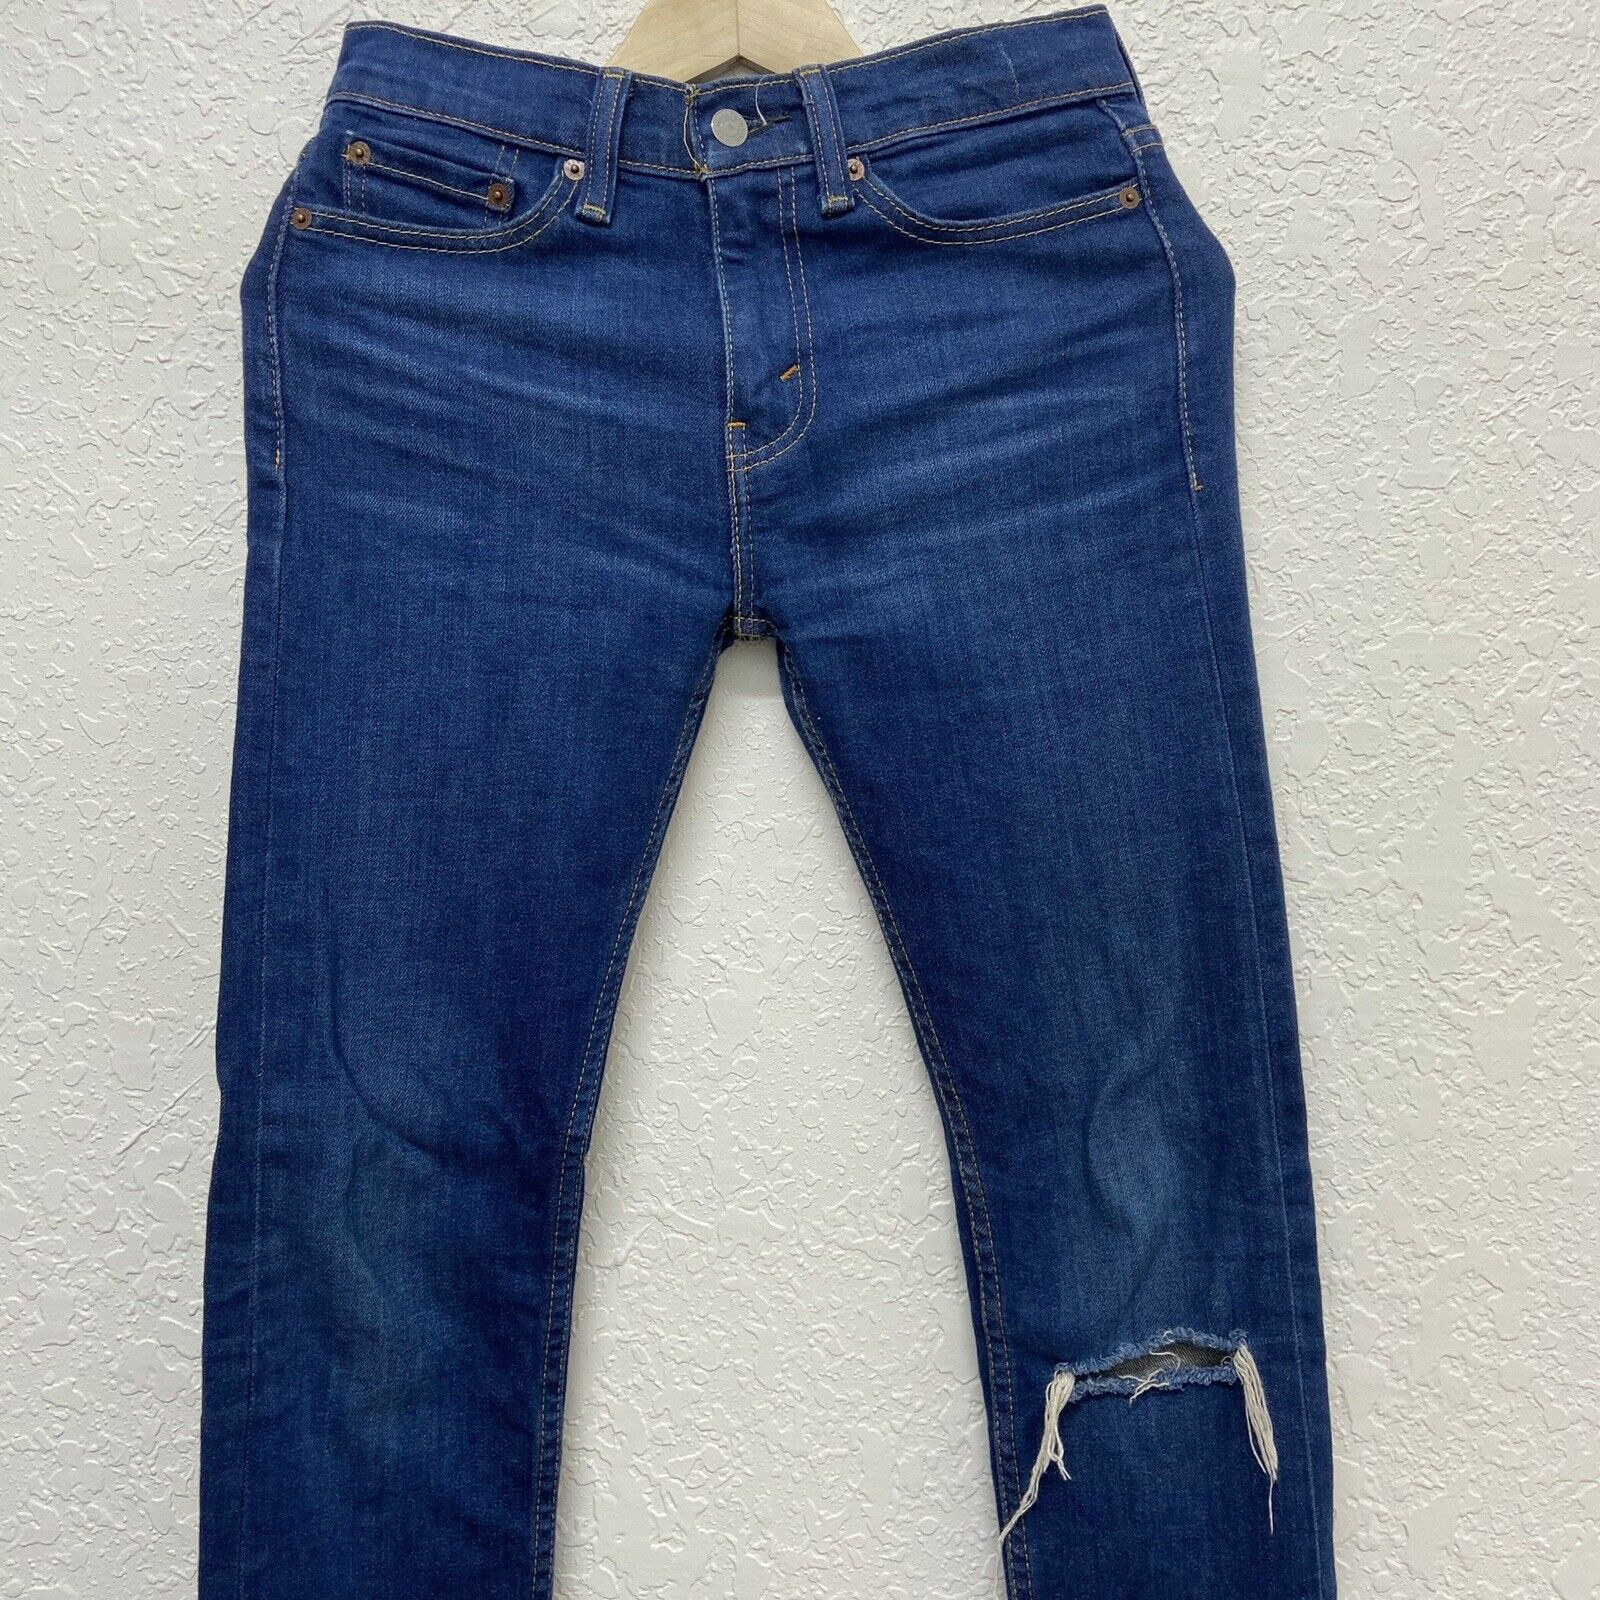 Levis 510 Skinny Fit Jeans - image 3